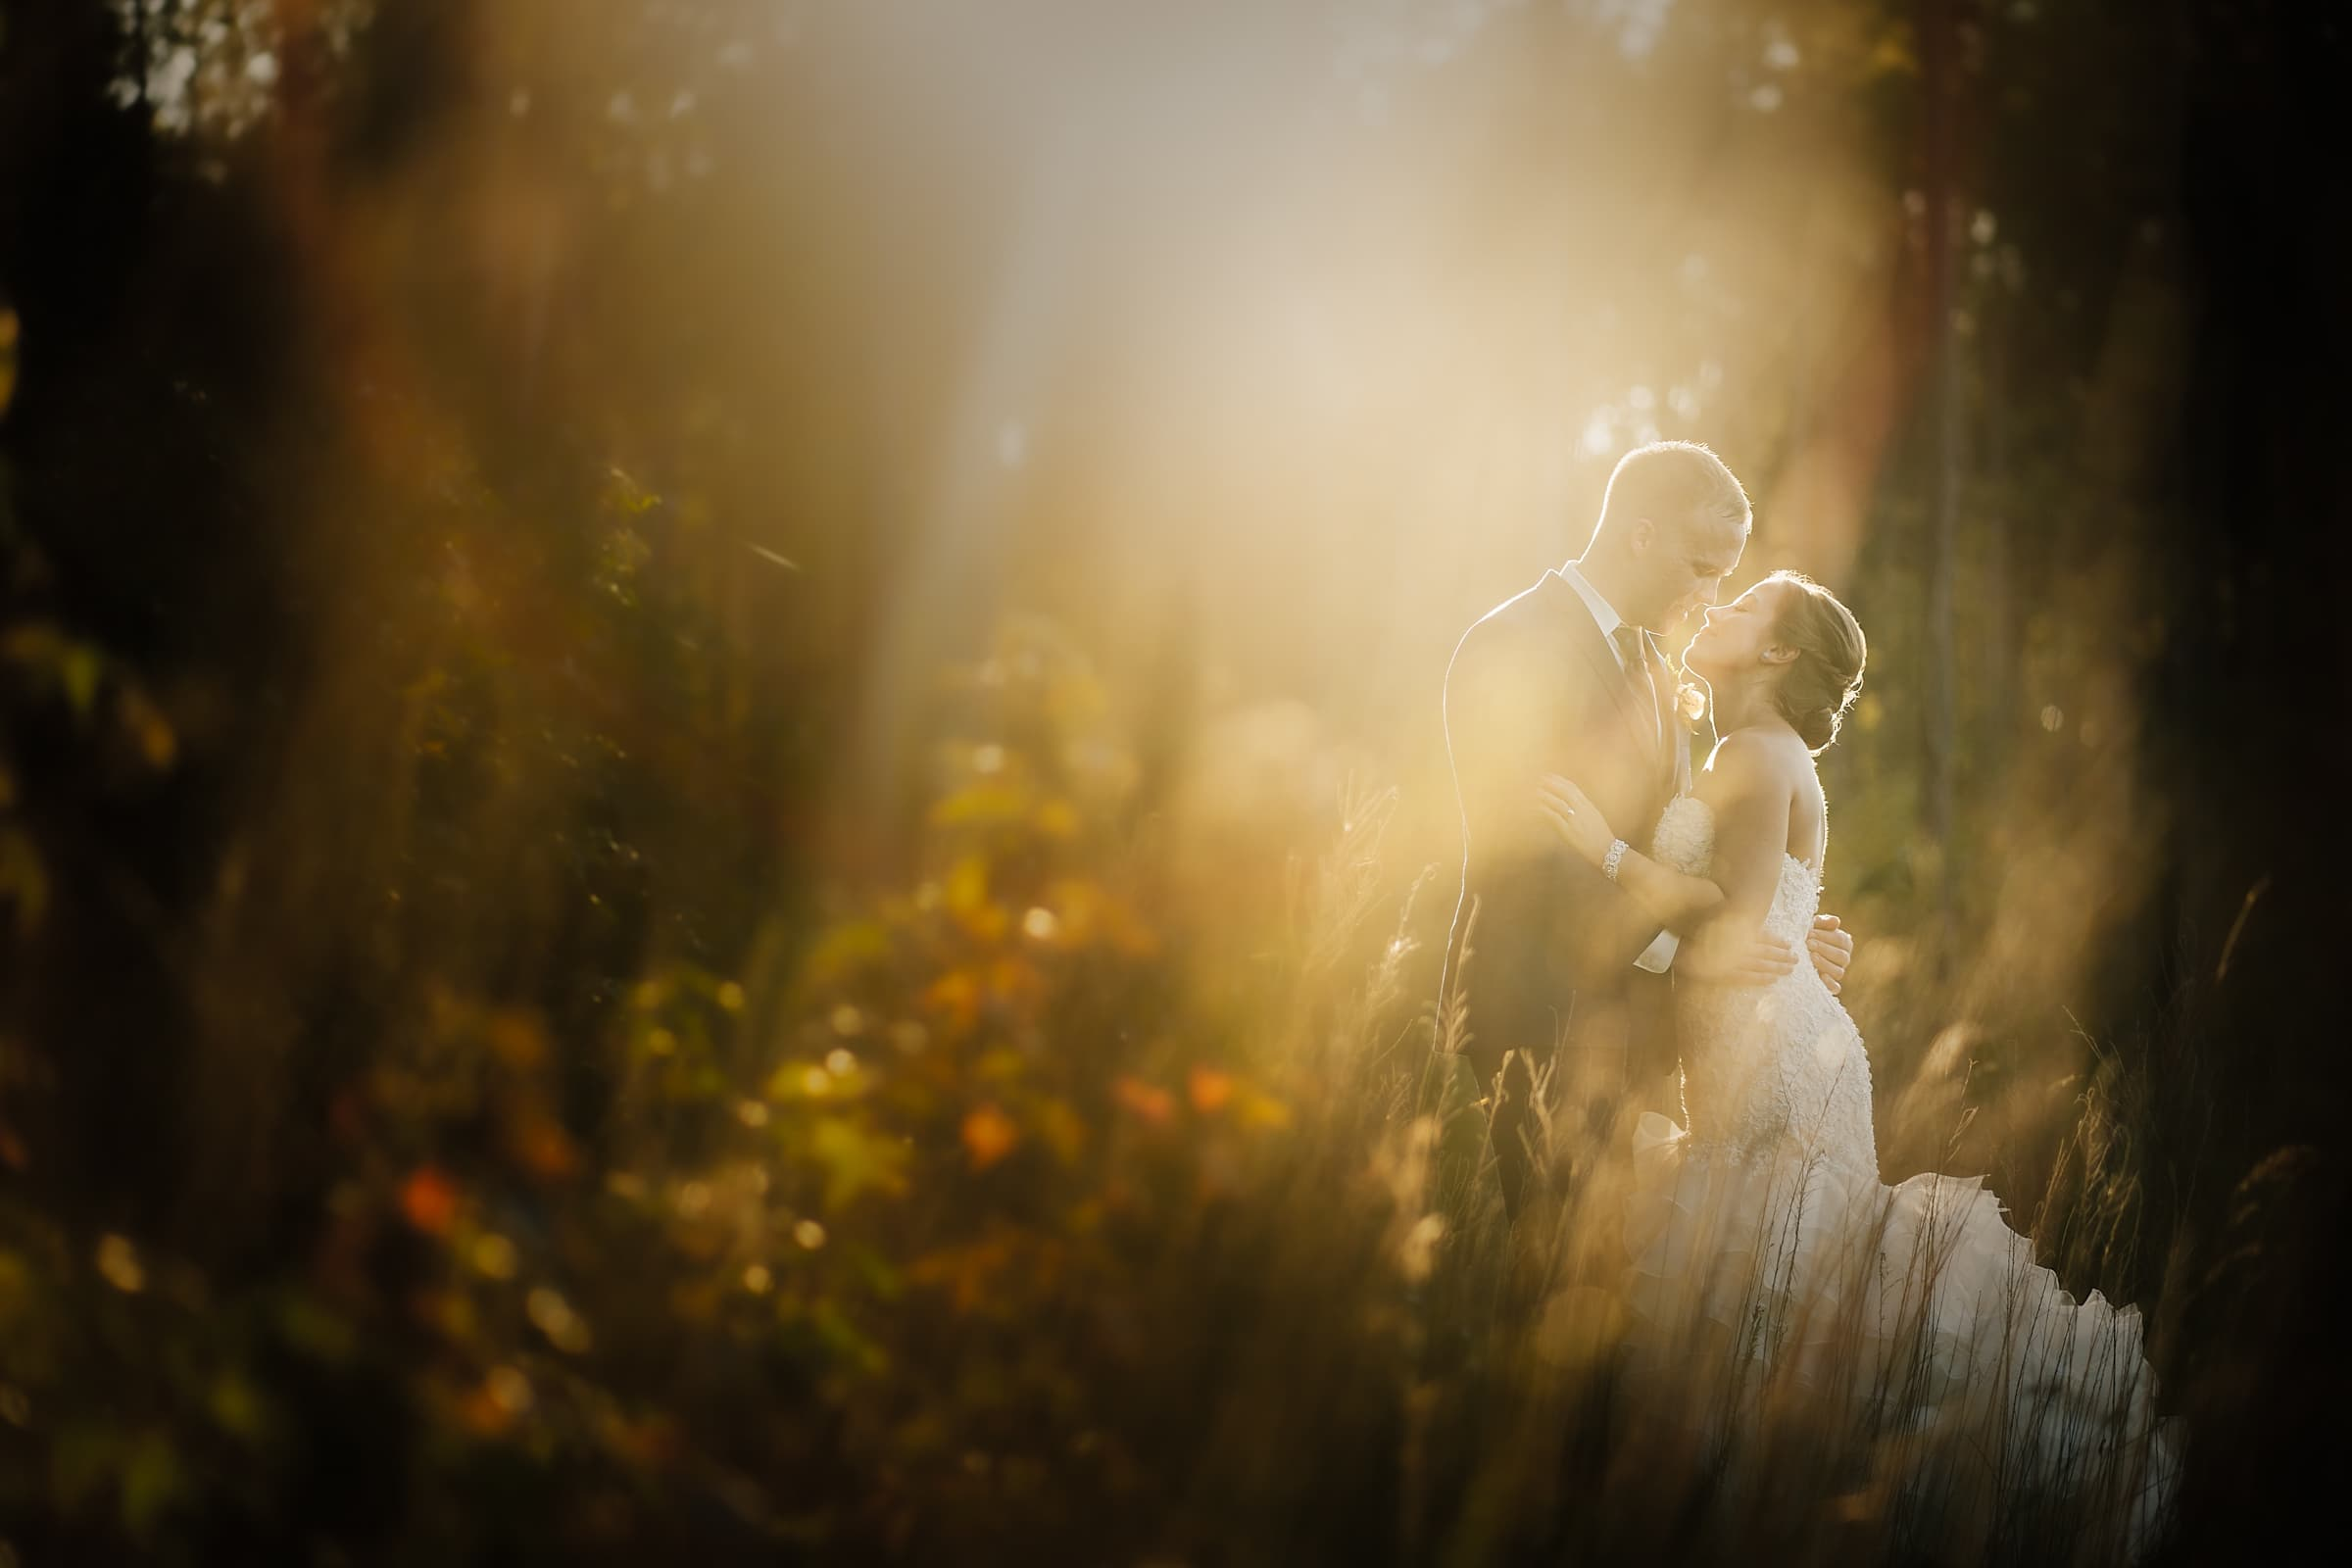 Pavilion at Carriage Farm Kissing Newlyweds at Golden Hour by Joe Payne Photography